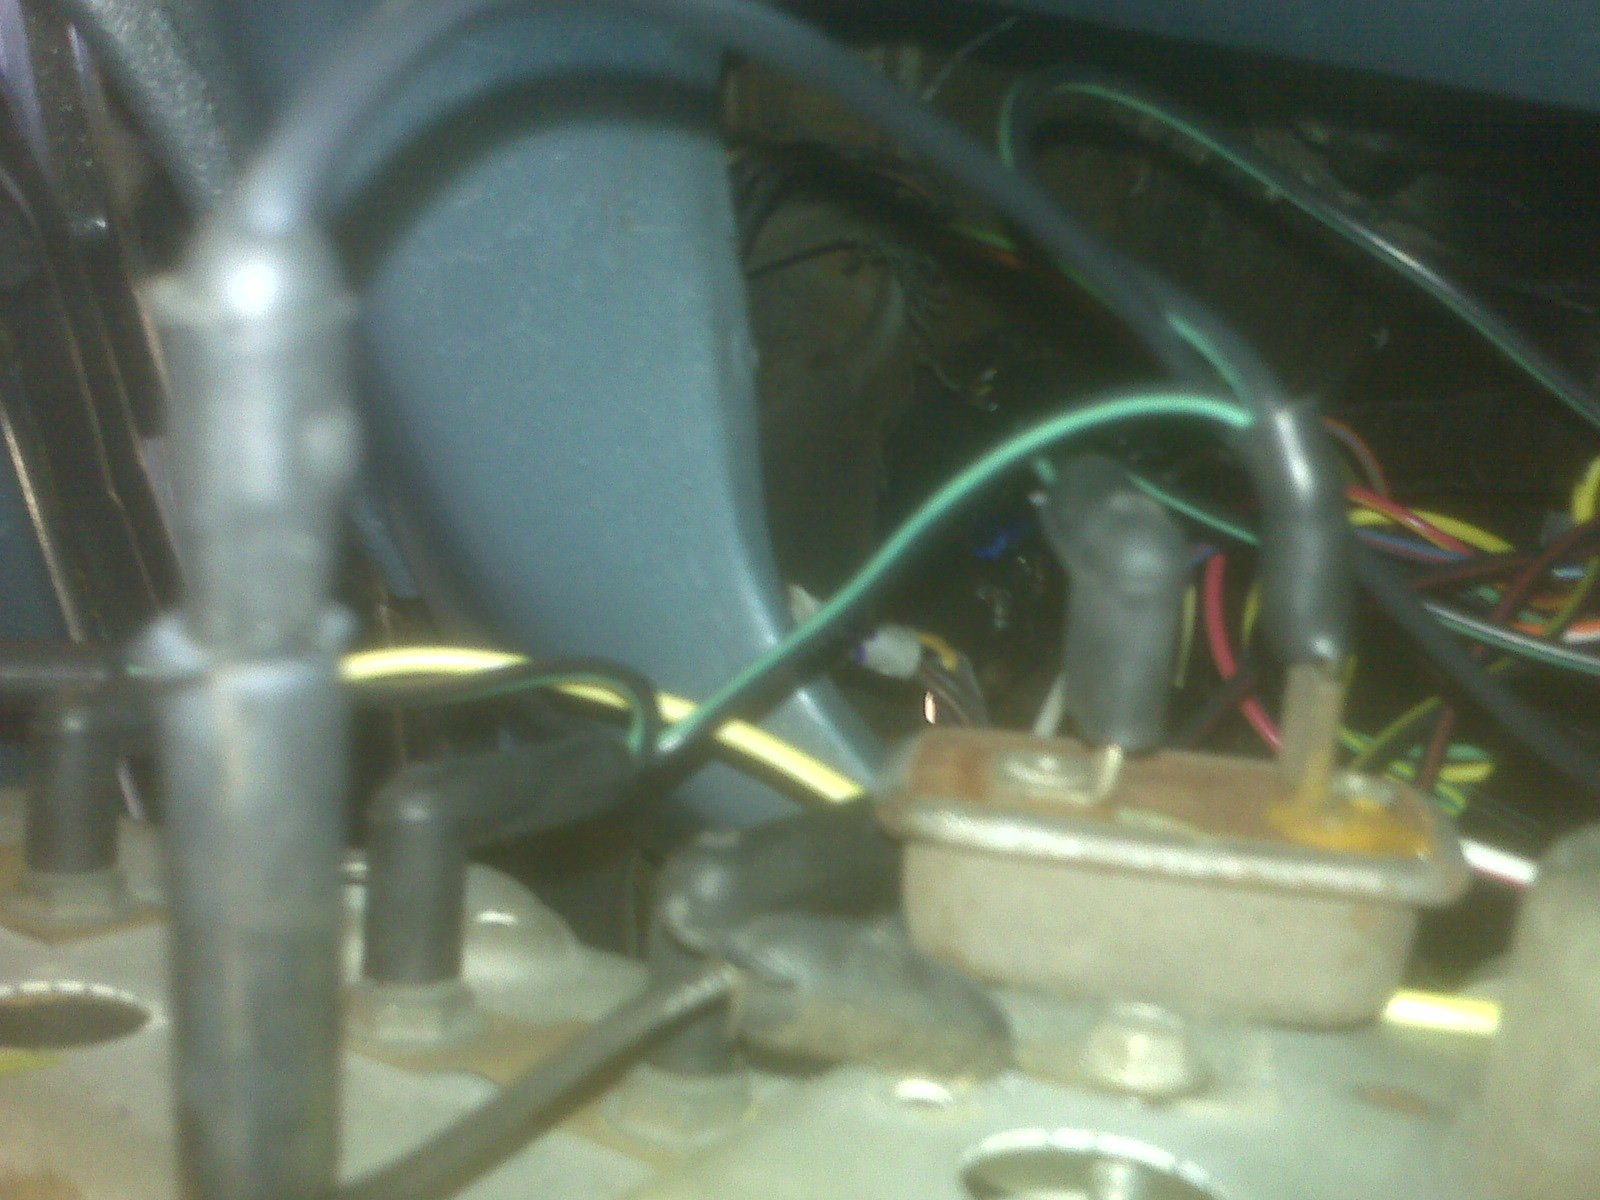 1966 mustang underdash wiring problems can you identify these plugs rh allfordmustangs com 66 Mustang Ignition Switch Wiring 66 Mustang Ignition Switch Wiring